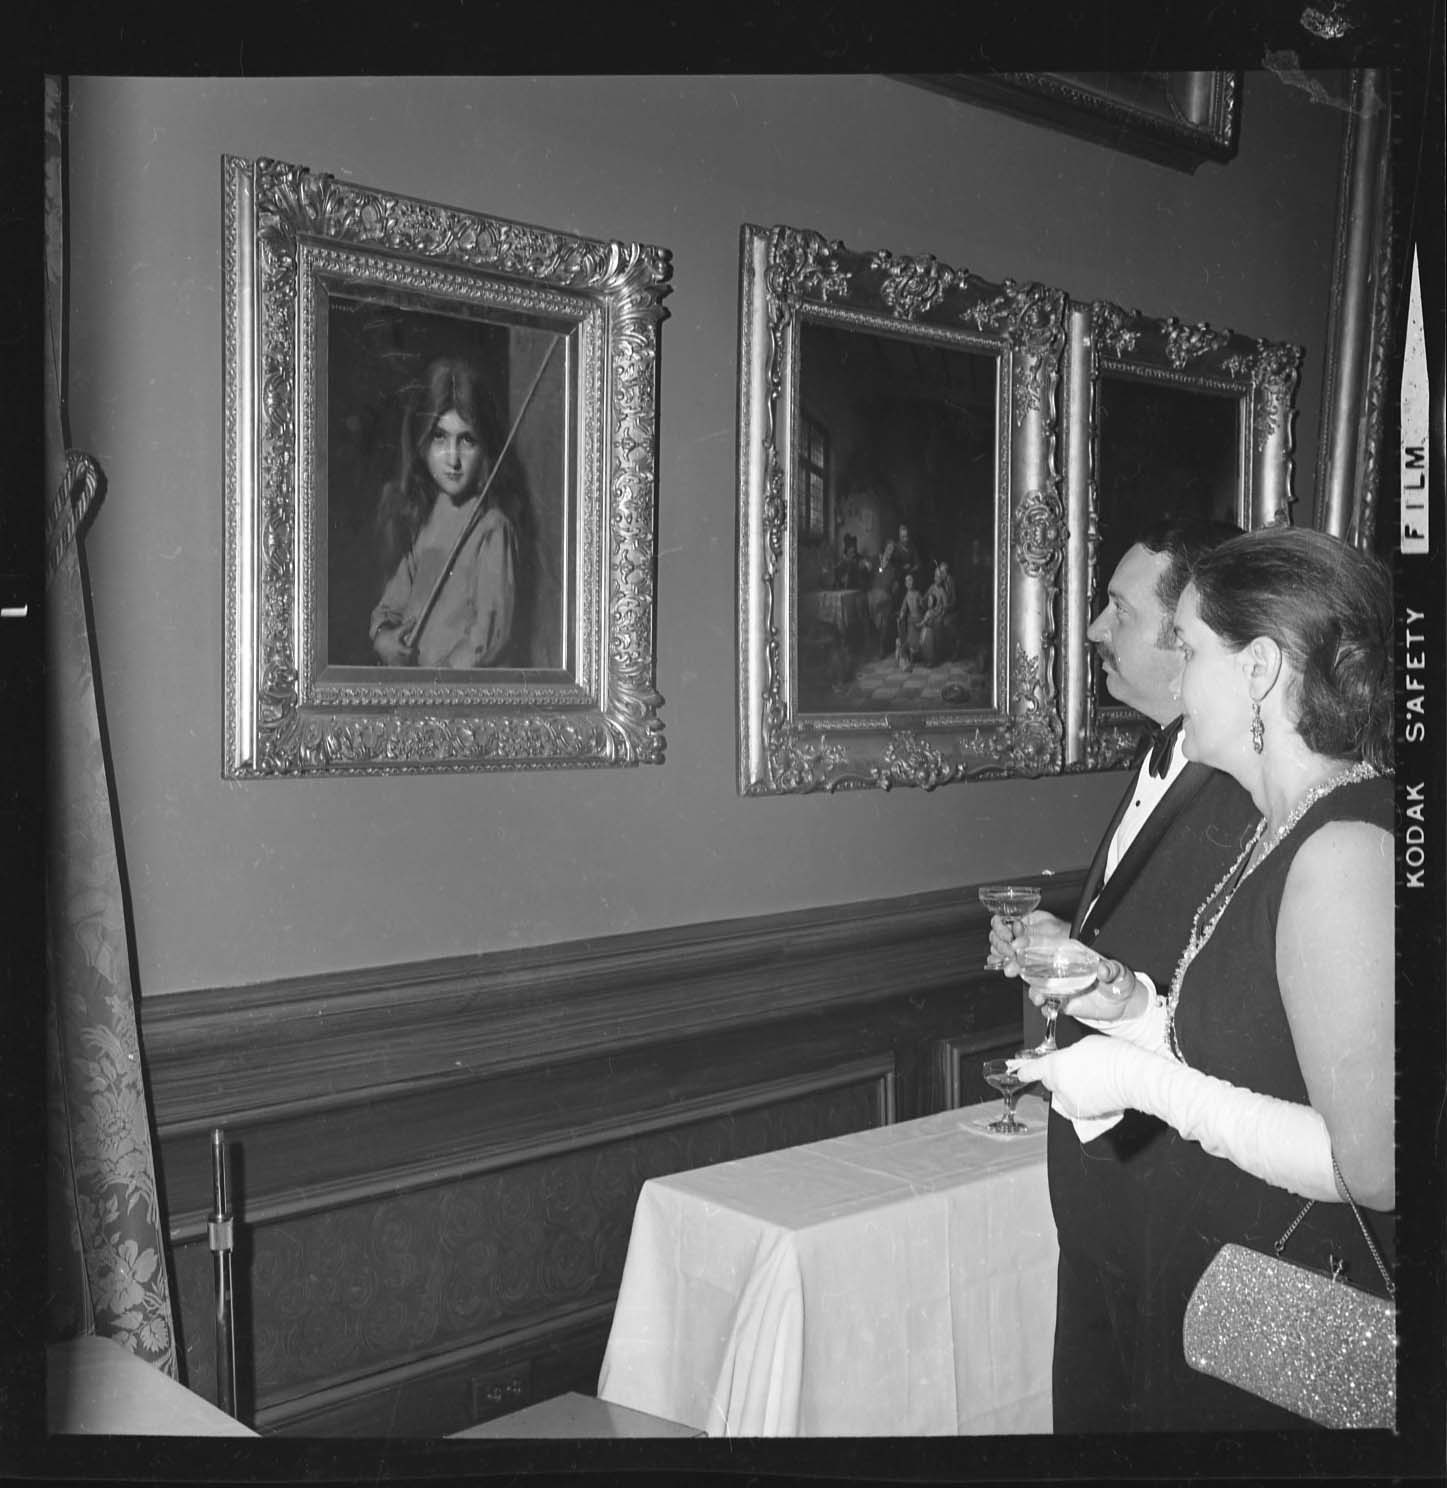 A man and woman hold drinks and look at a portrait hanging on the wall.